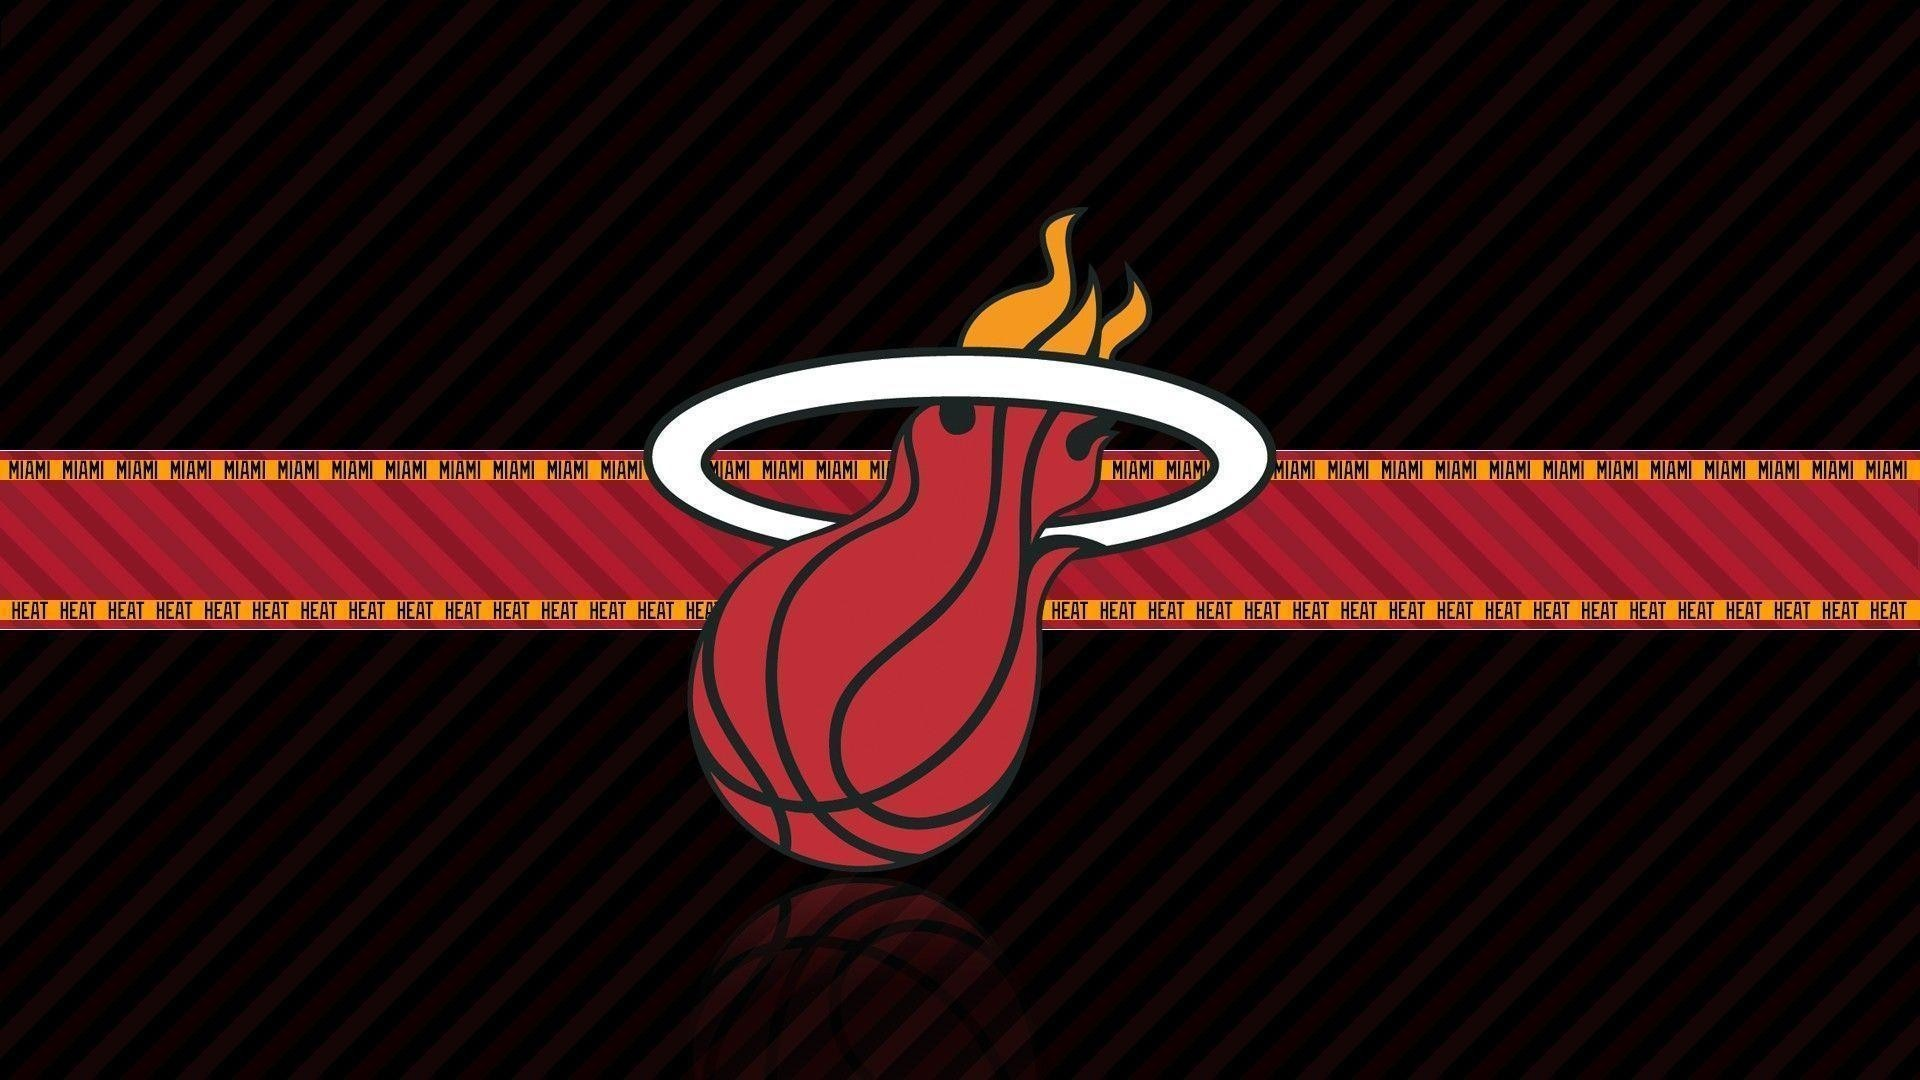 HD Miami Heat Wallpapers 2019 Basketball Wallpaper 1920x1080